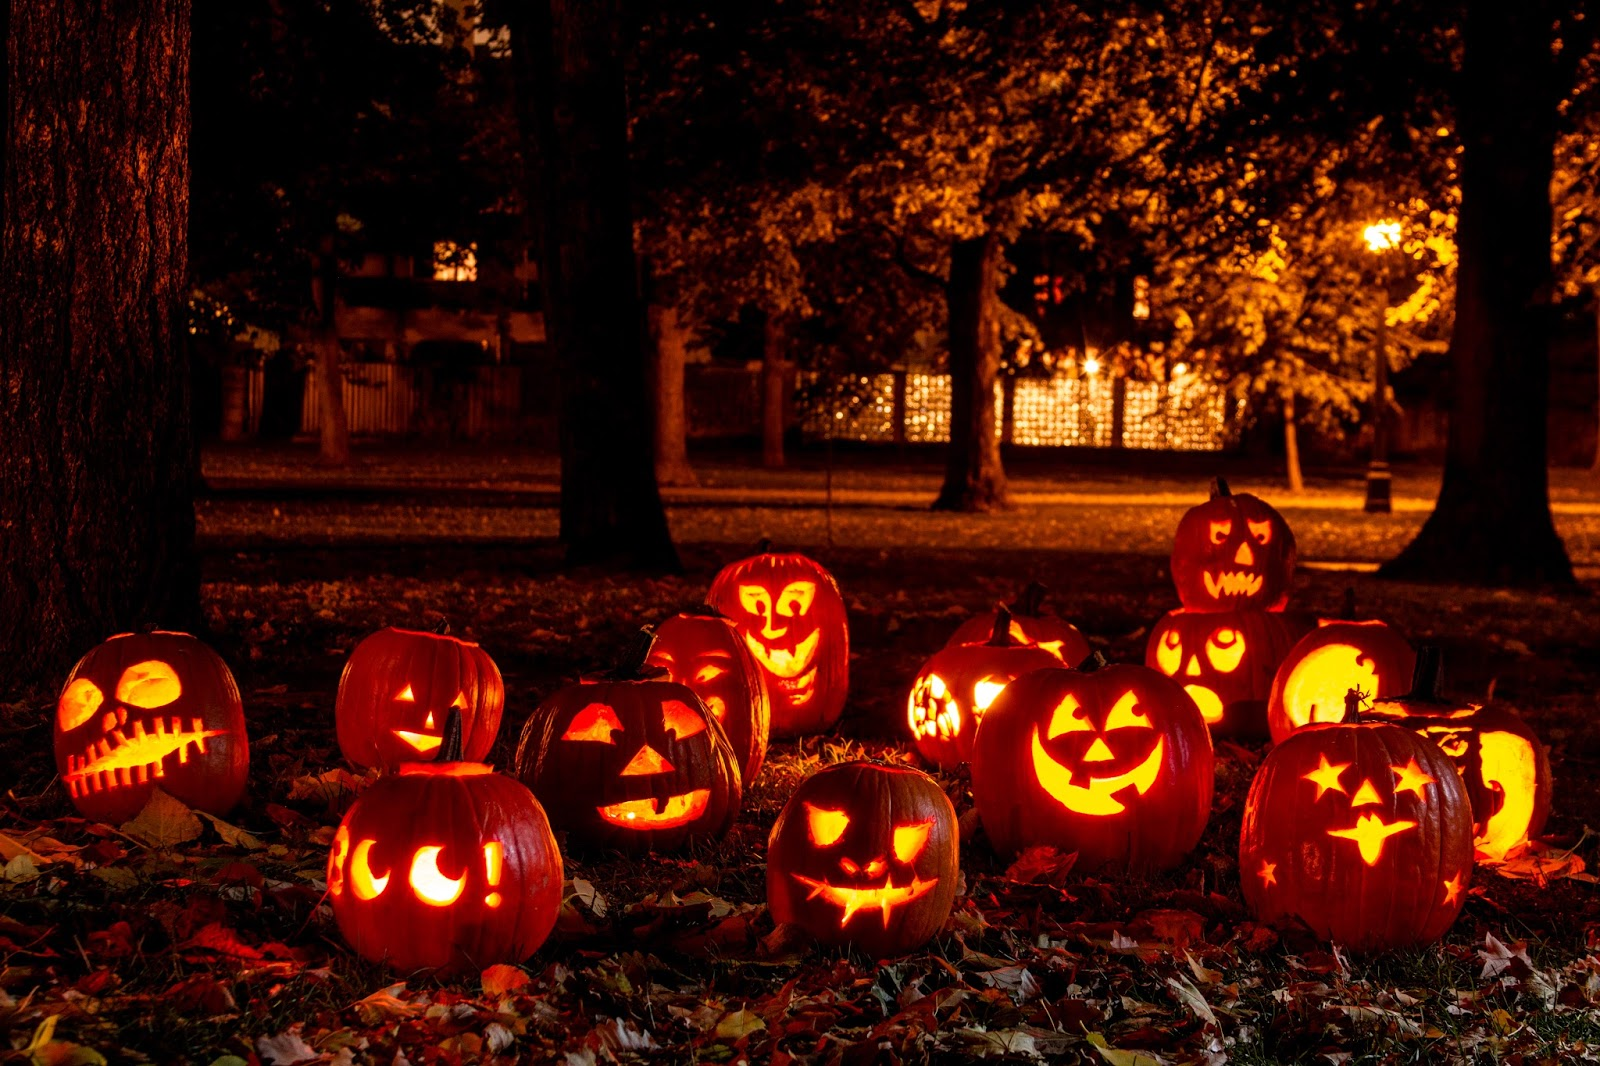 Halloween Is Only Eight Days Away The Holiday Has Become Big Business With Consumers Spending Nearly 8 Billion Dollars Annually 2 Billion Of Which Is